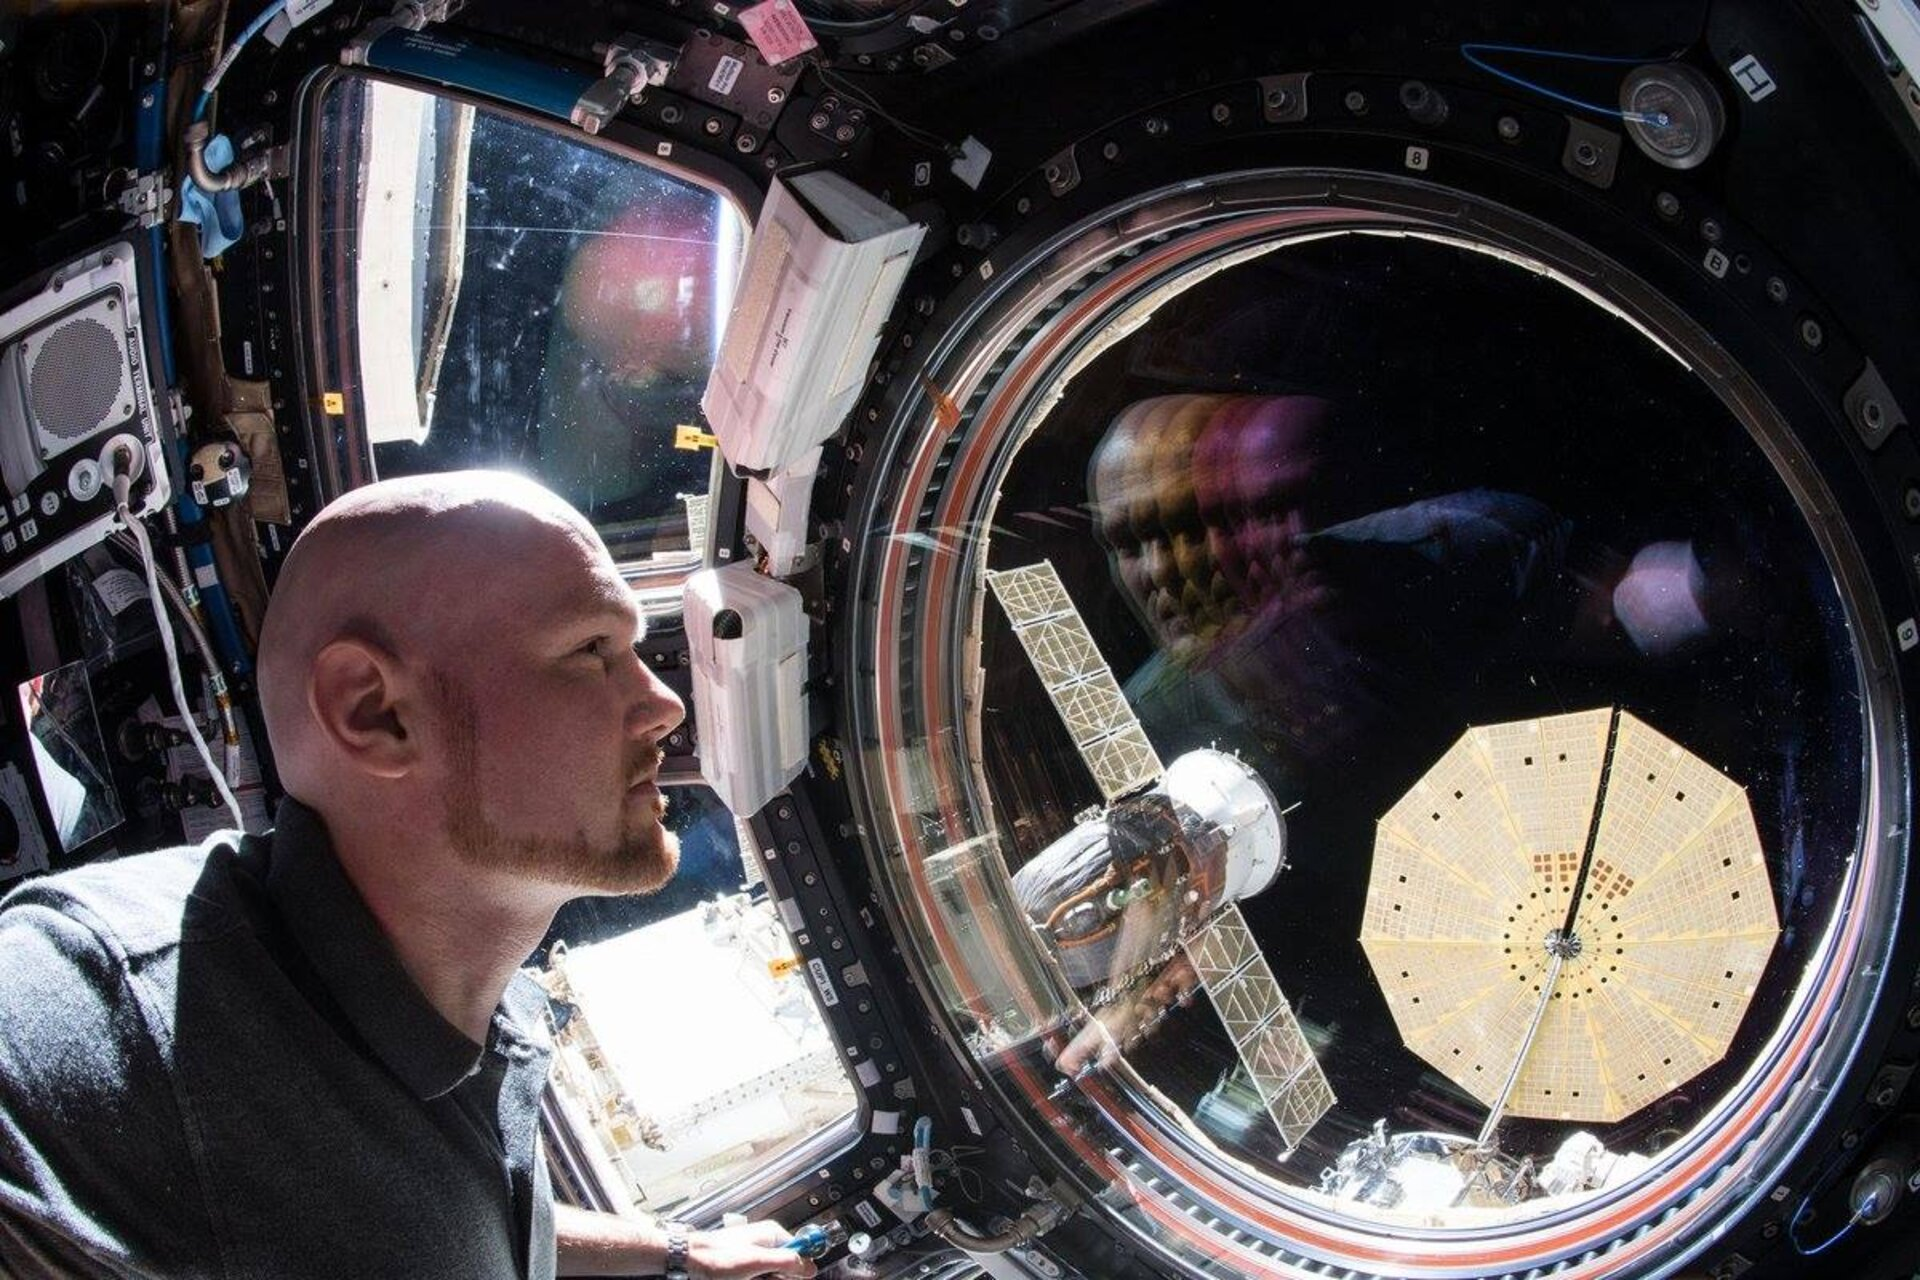 An astronaut's reflection